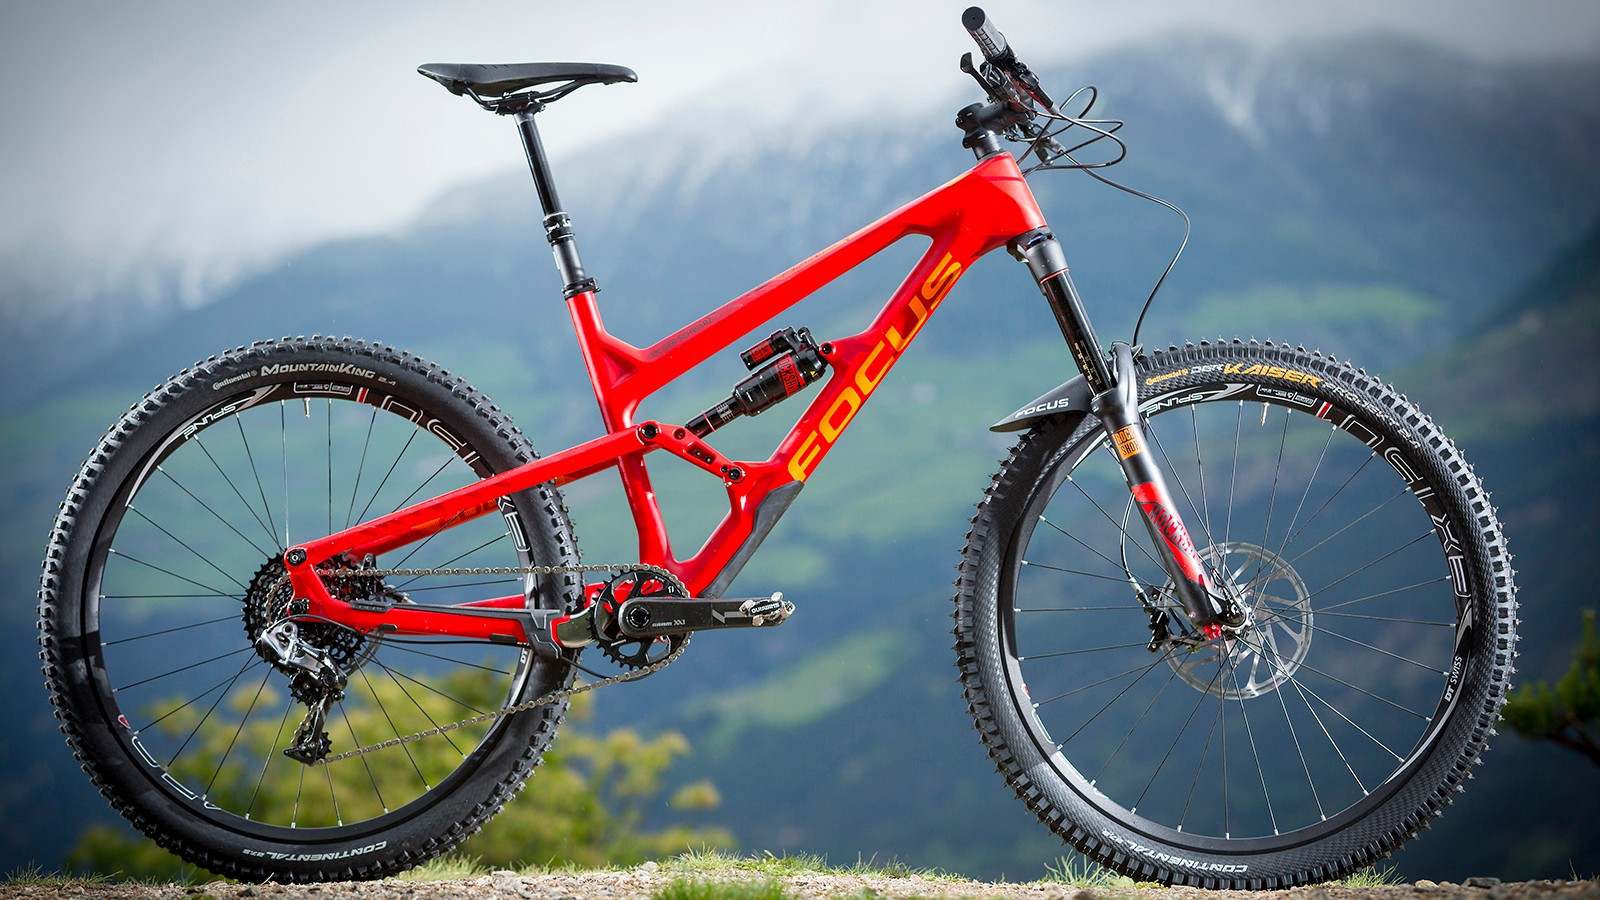 The SAM C Team brings carbon construction and top-end components to the SAM line